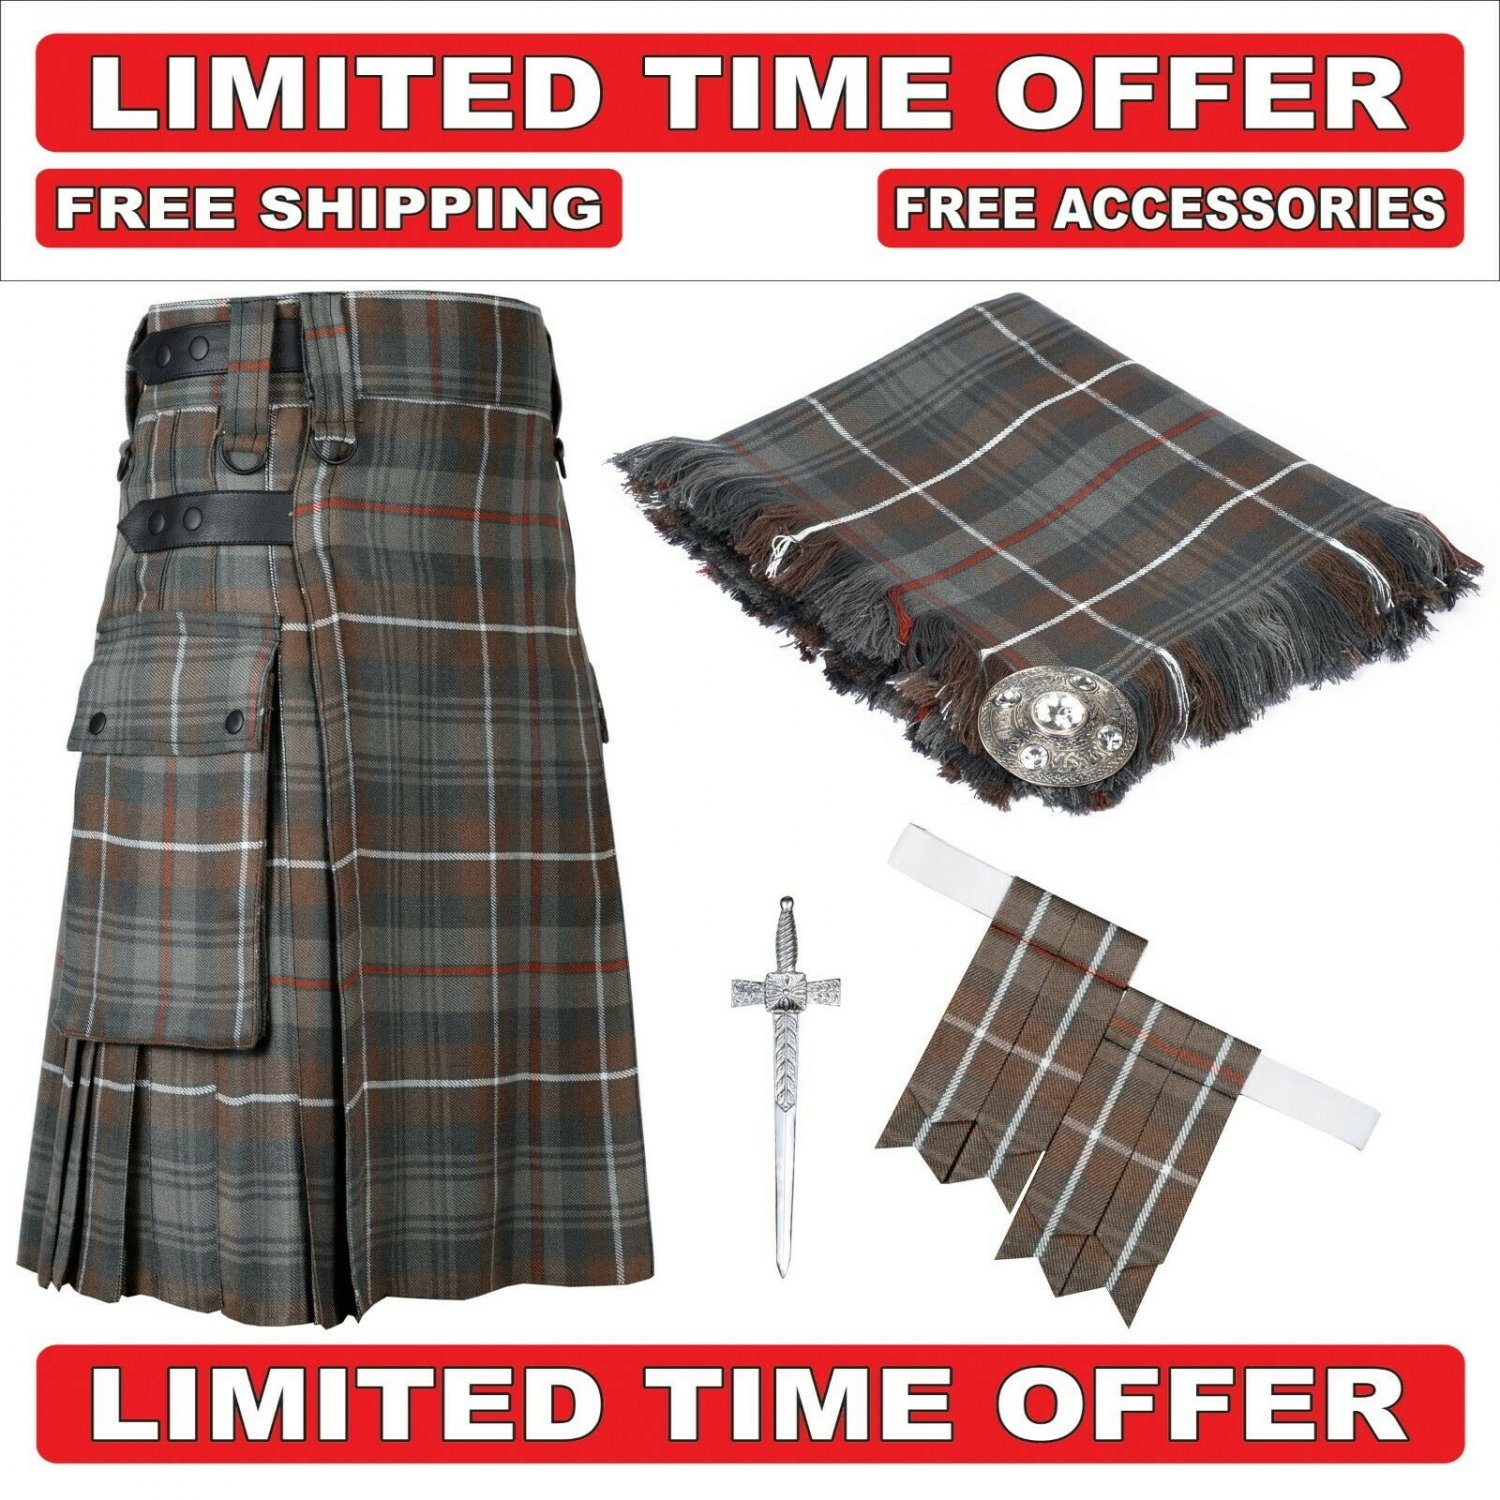 48 Mackenzie weathered Scottish Utility Tartan Kilt Package Kilt-Flyplaid-Flashes-Kilt Pin-Brooch